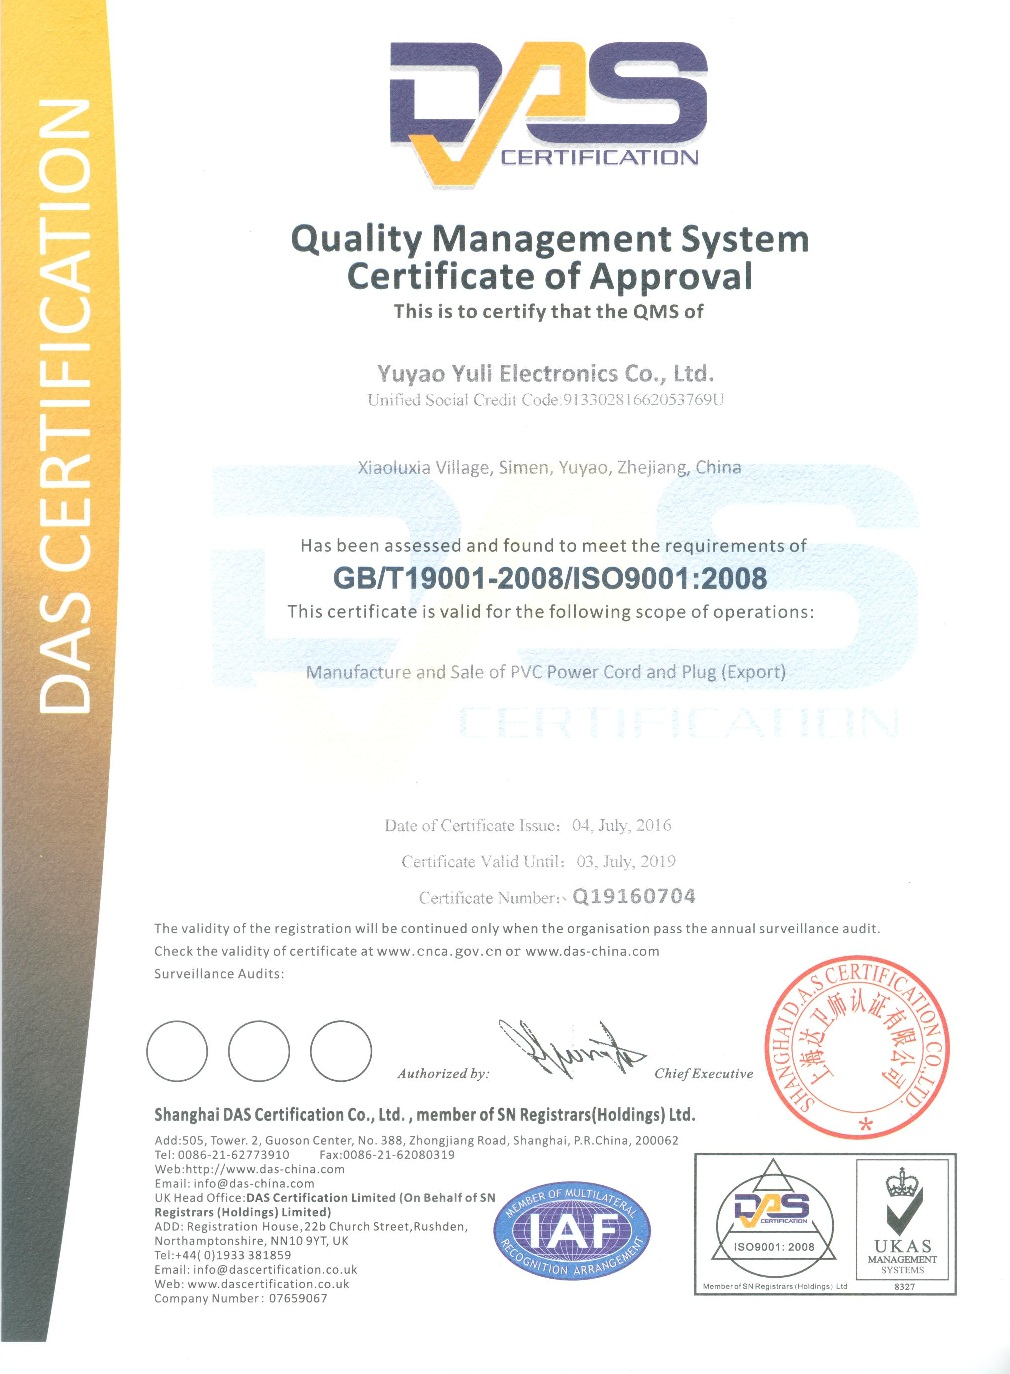 pass the quality management system certificate of approval